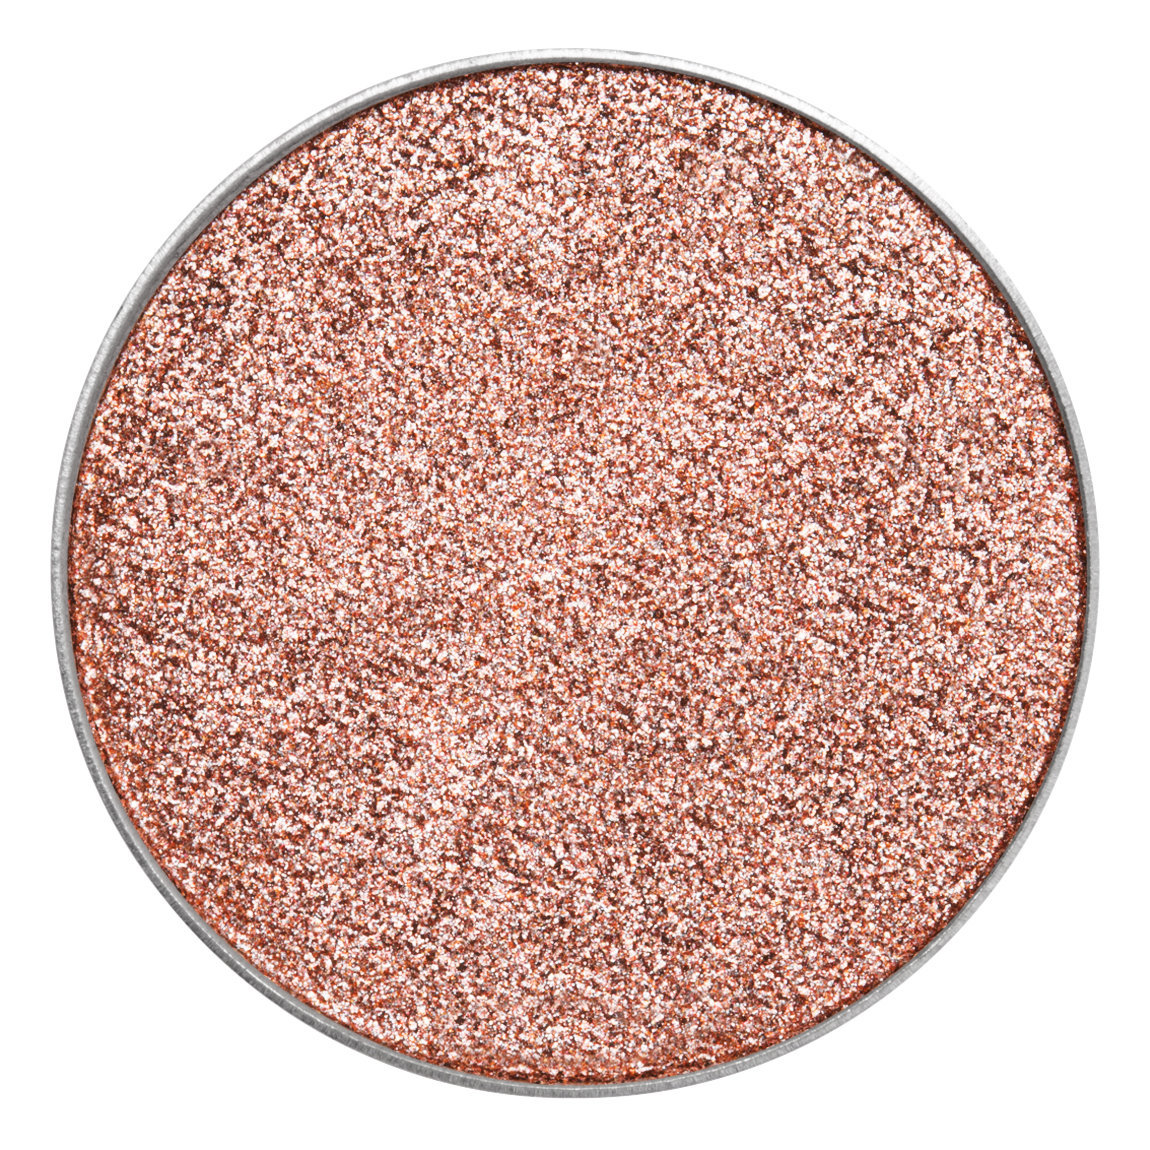 Anastasia Beverly Hills Eye Shadow Single Pink Champagne product swatch.